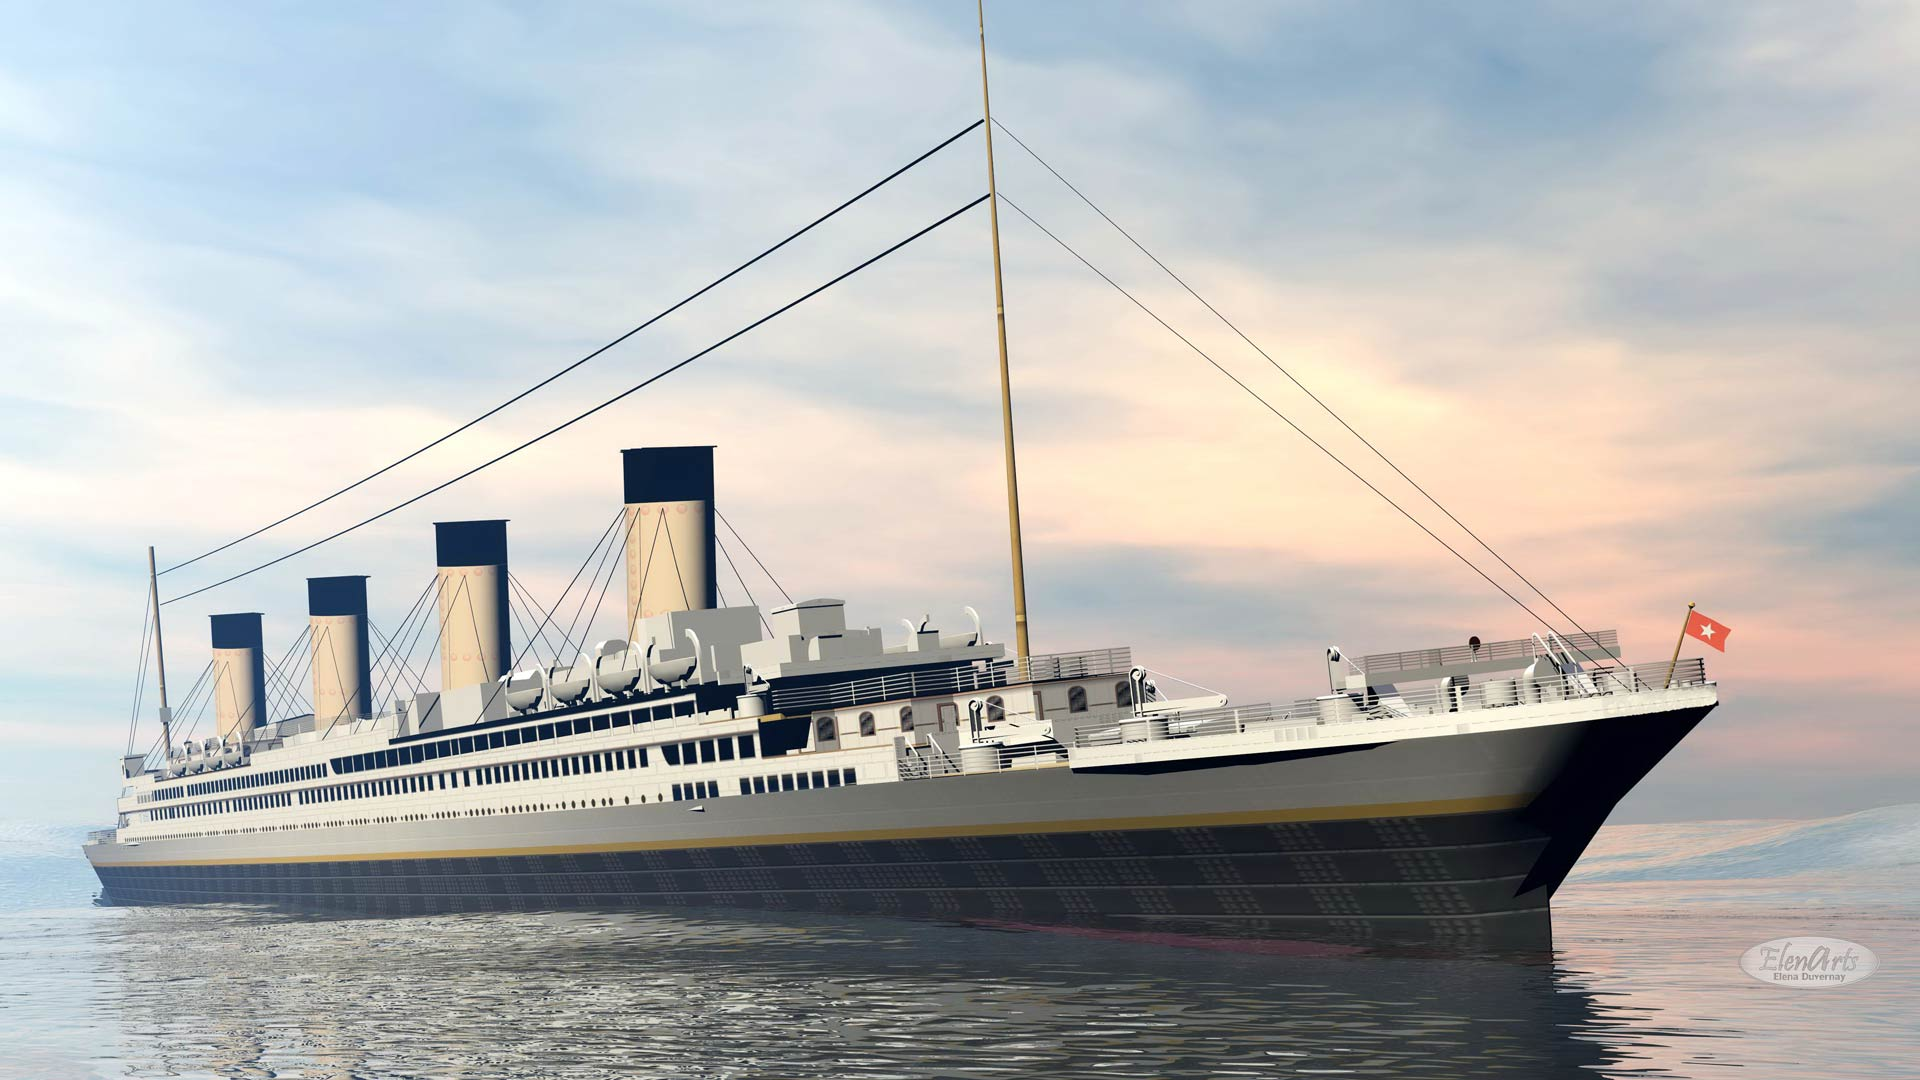 Famous Titanic ship floating on the water by sunset - 3D render